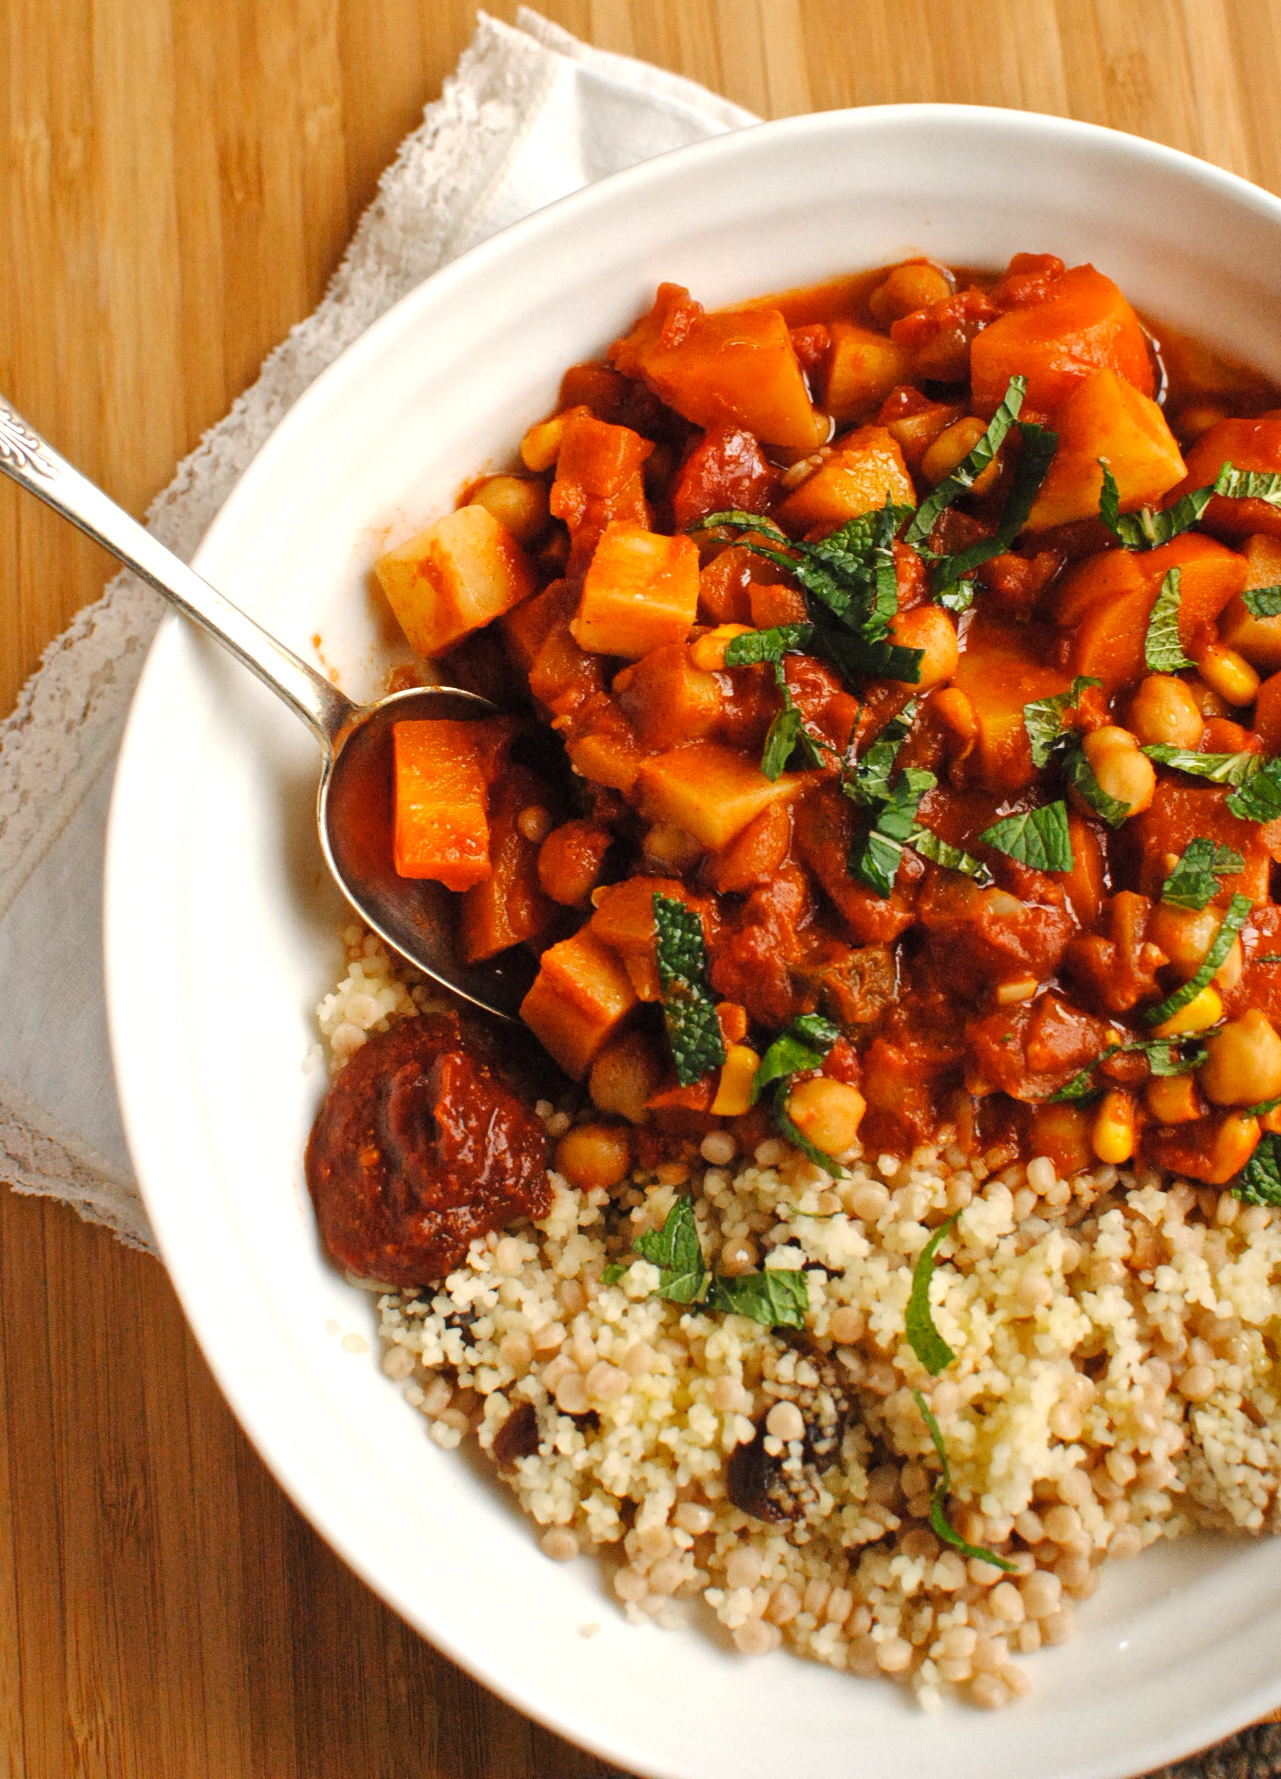 Couscous recipes vegetarian easy dinners